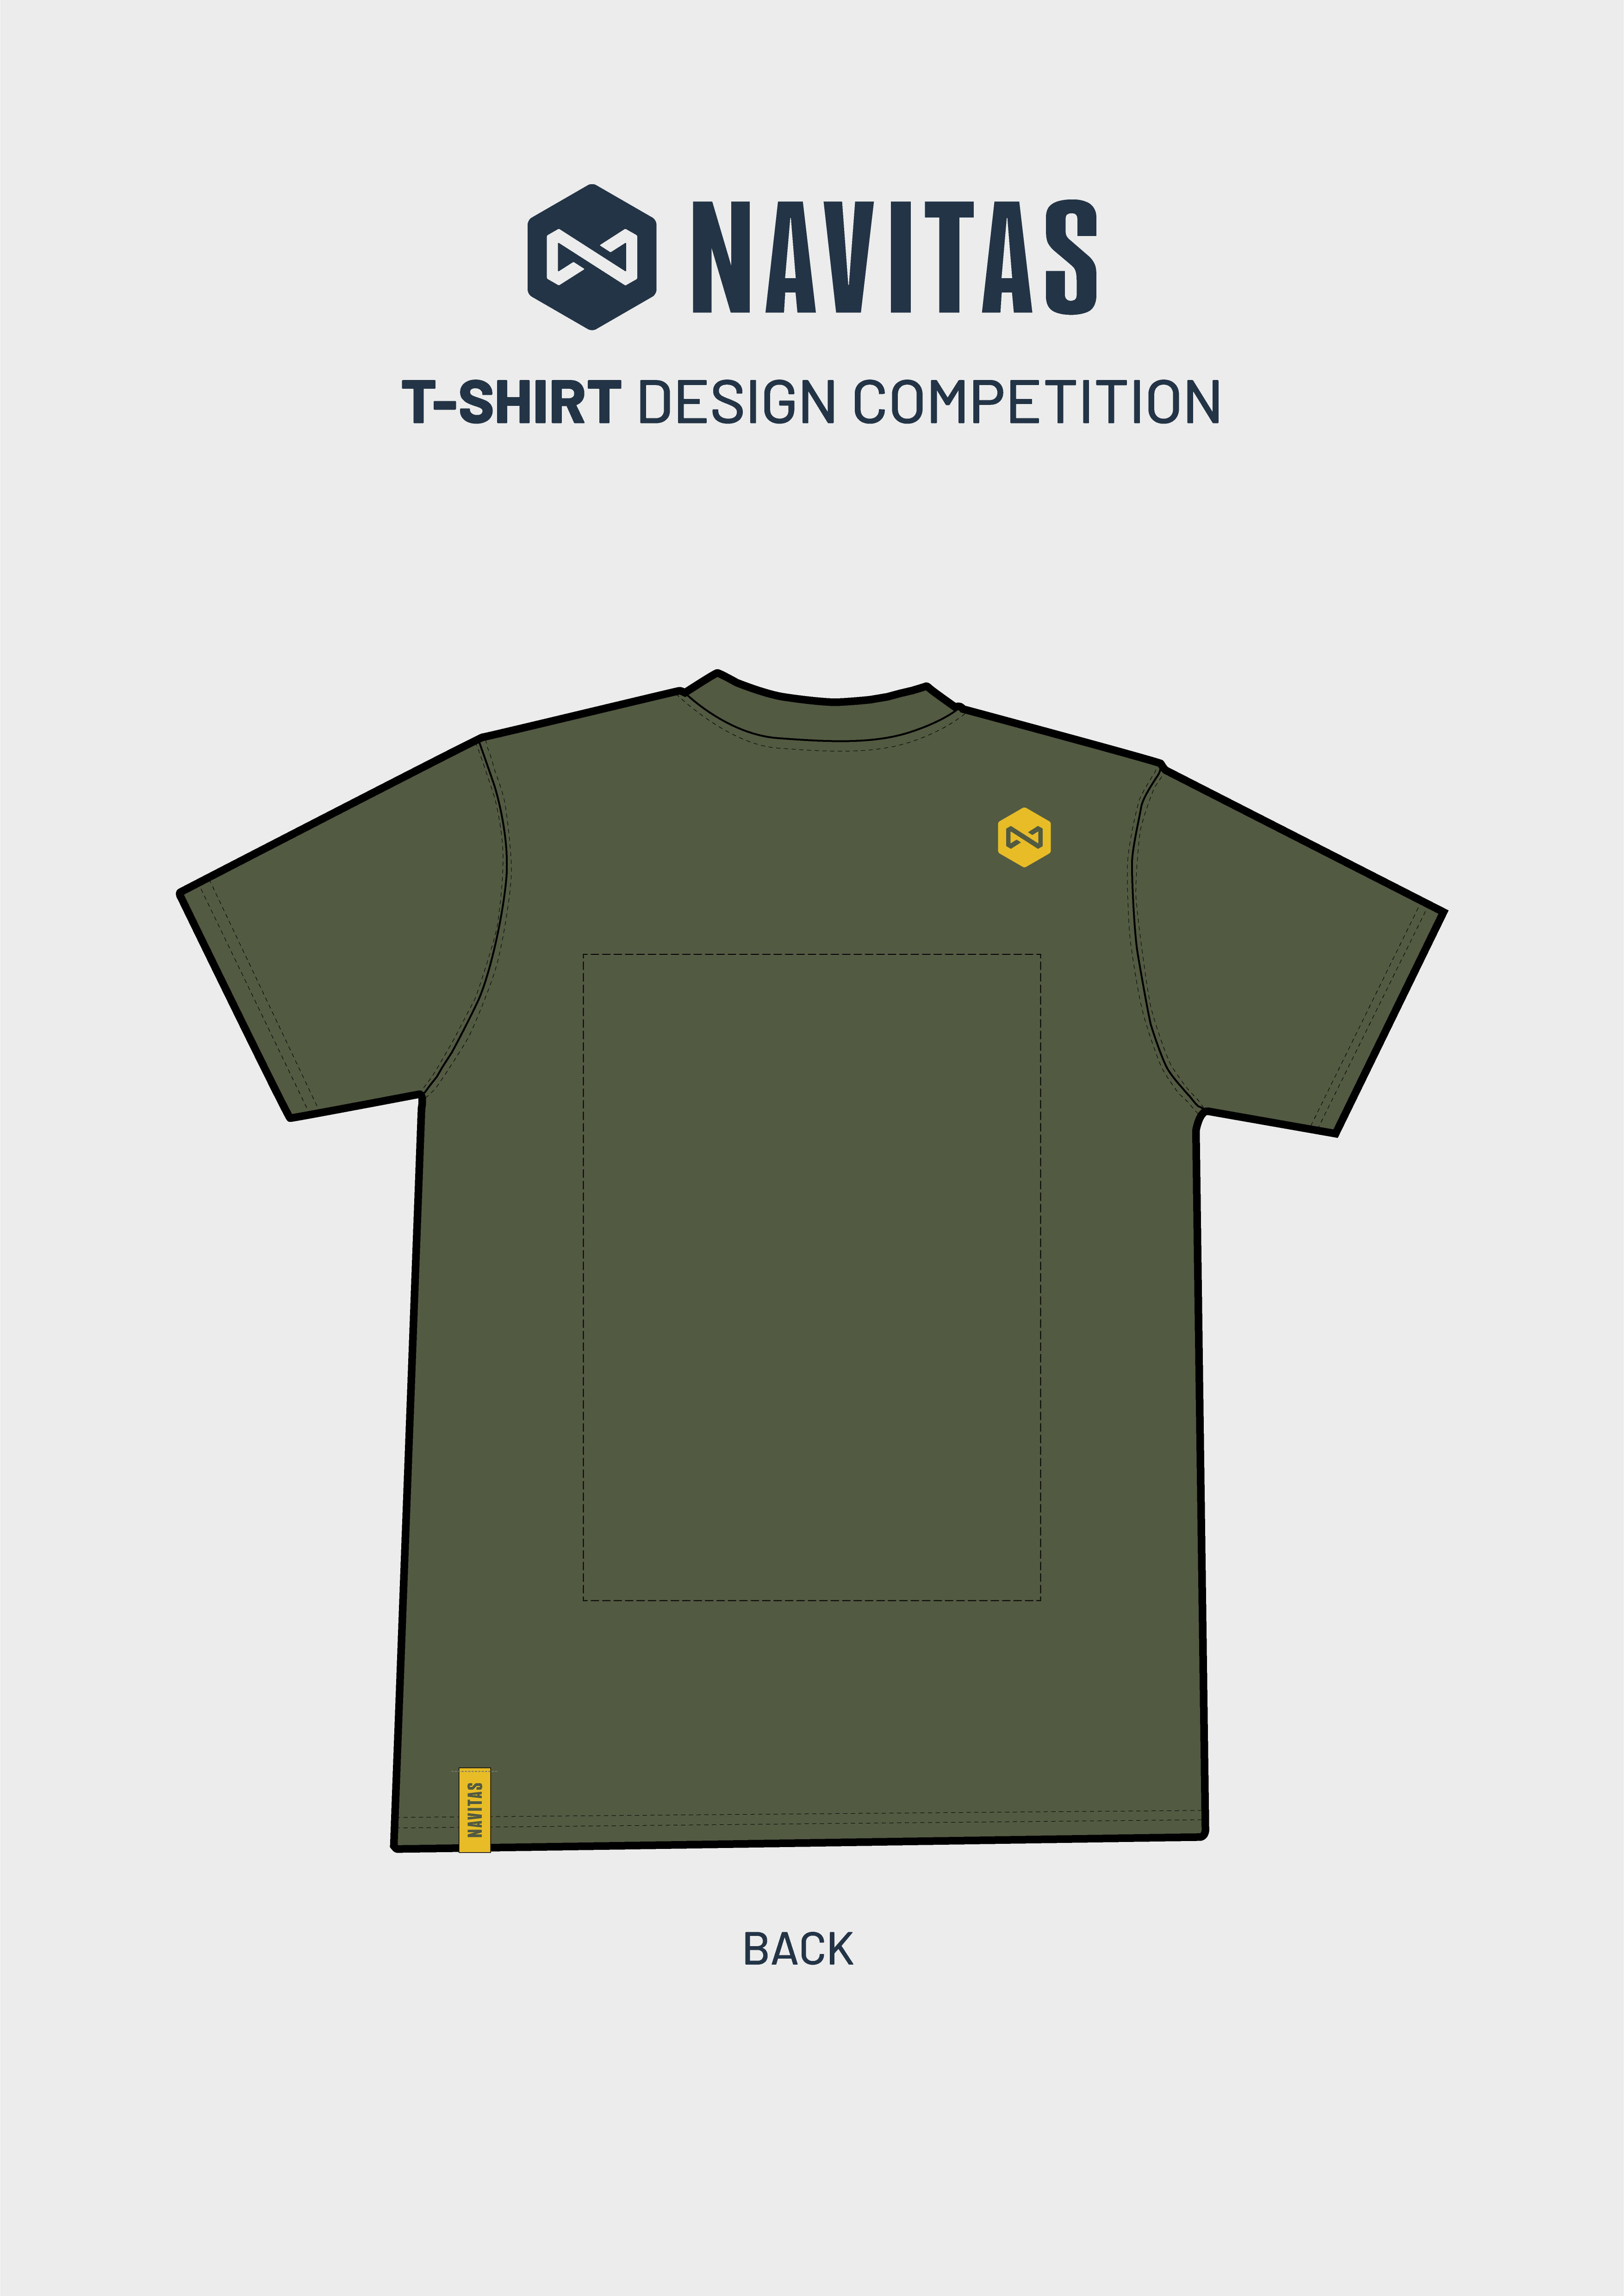 Navitas T-Shirt Design Back